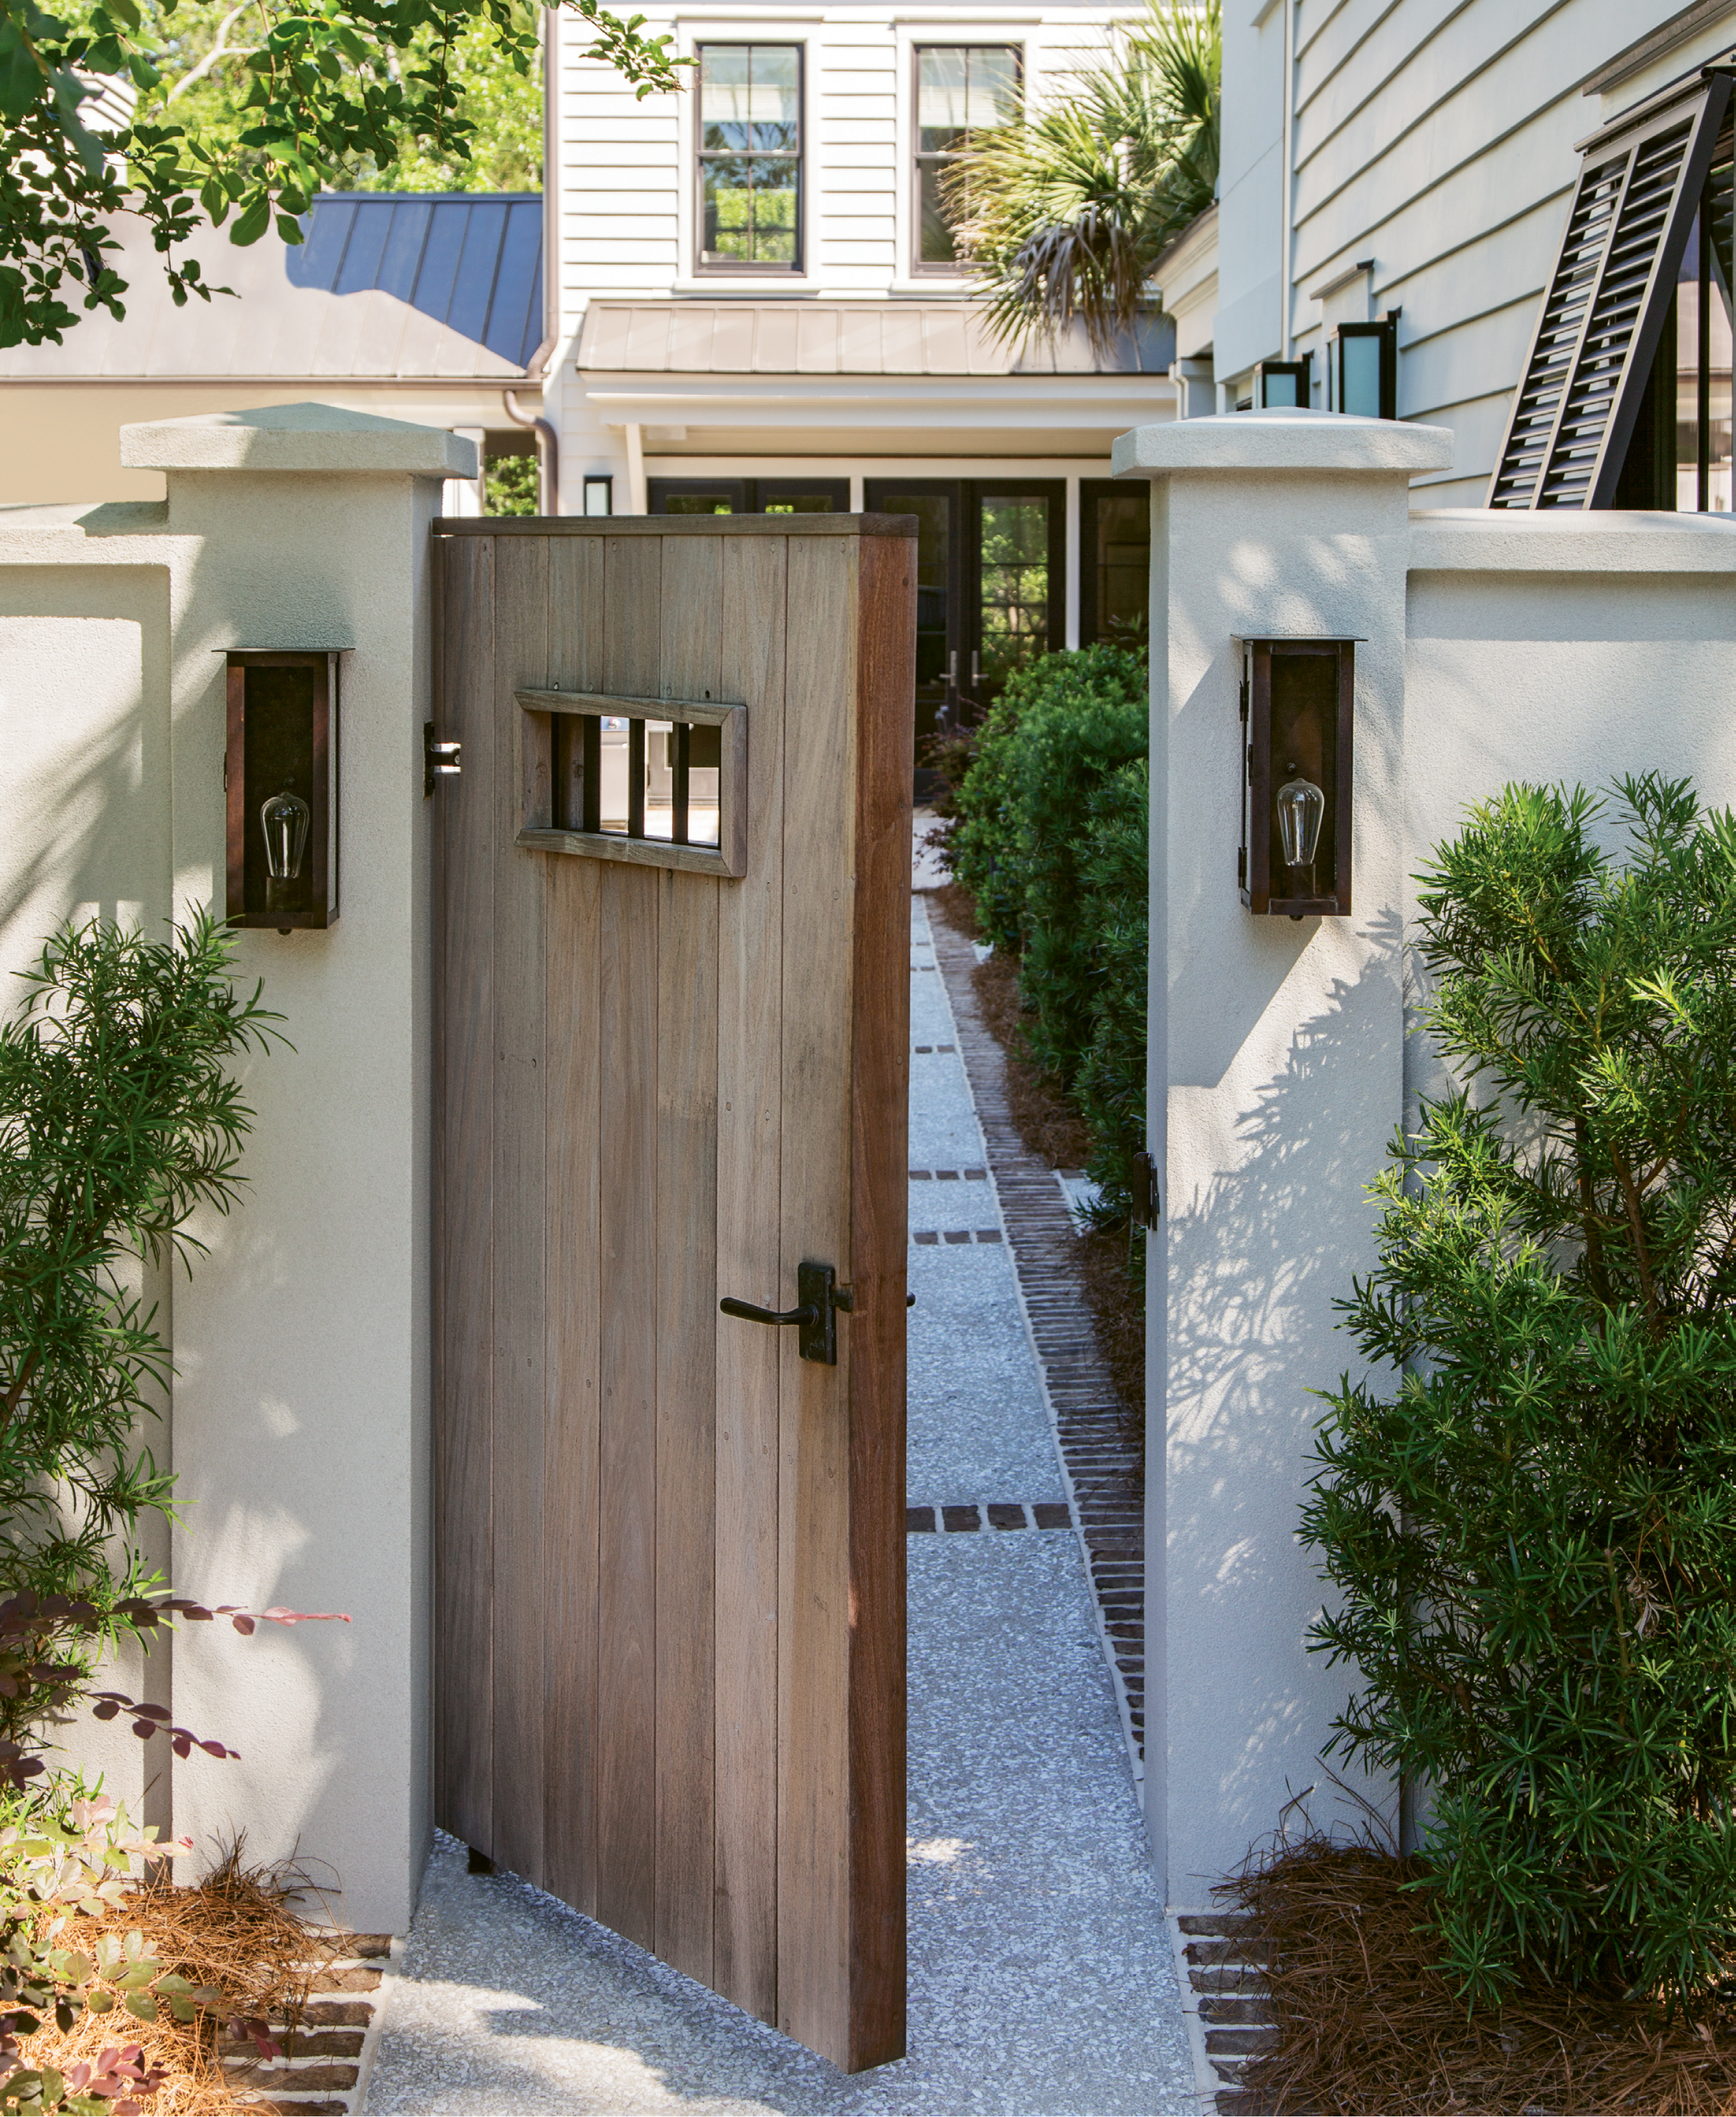 """The custom-made Ipe and iron gate, designed by Melissa Lenox, took some """"serious time to get right,"""" says Theresa. """"We knew it had to make a statement."""""""